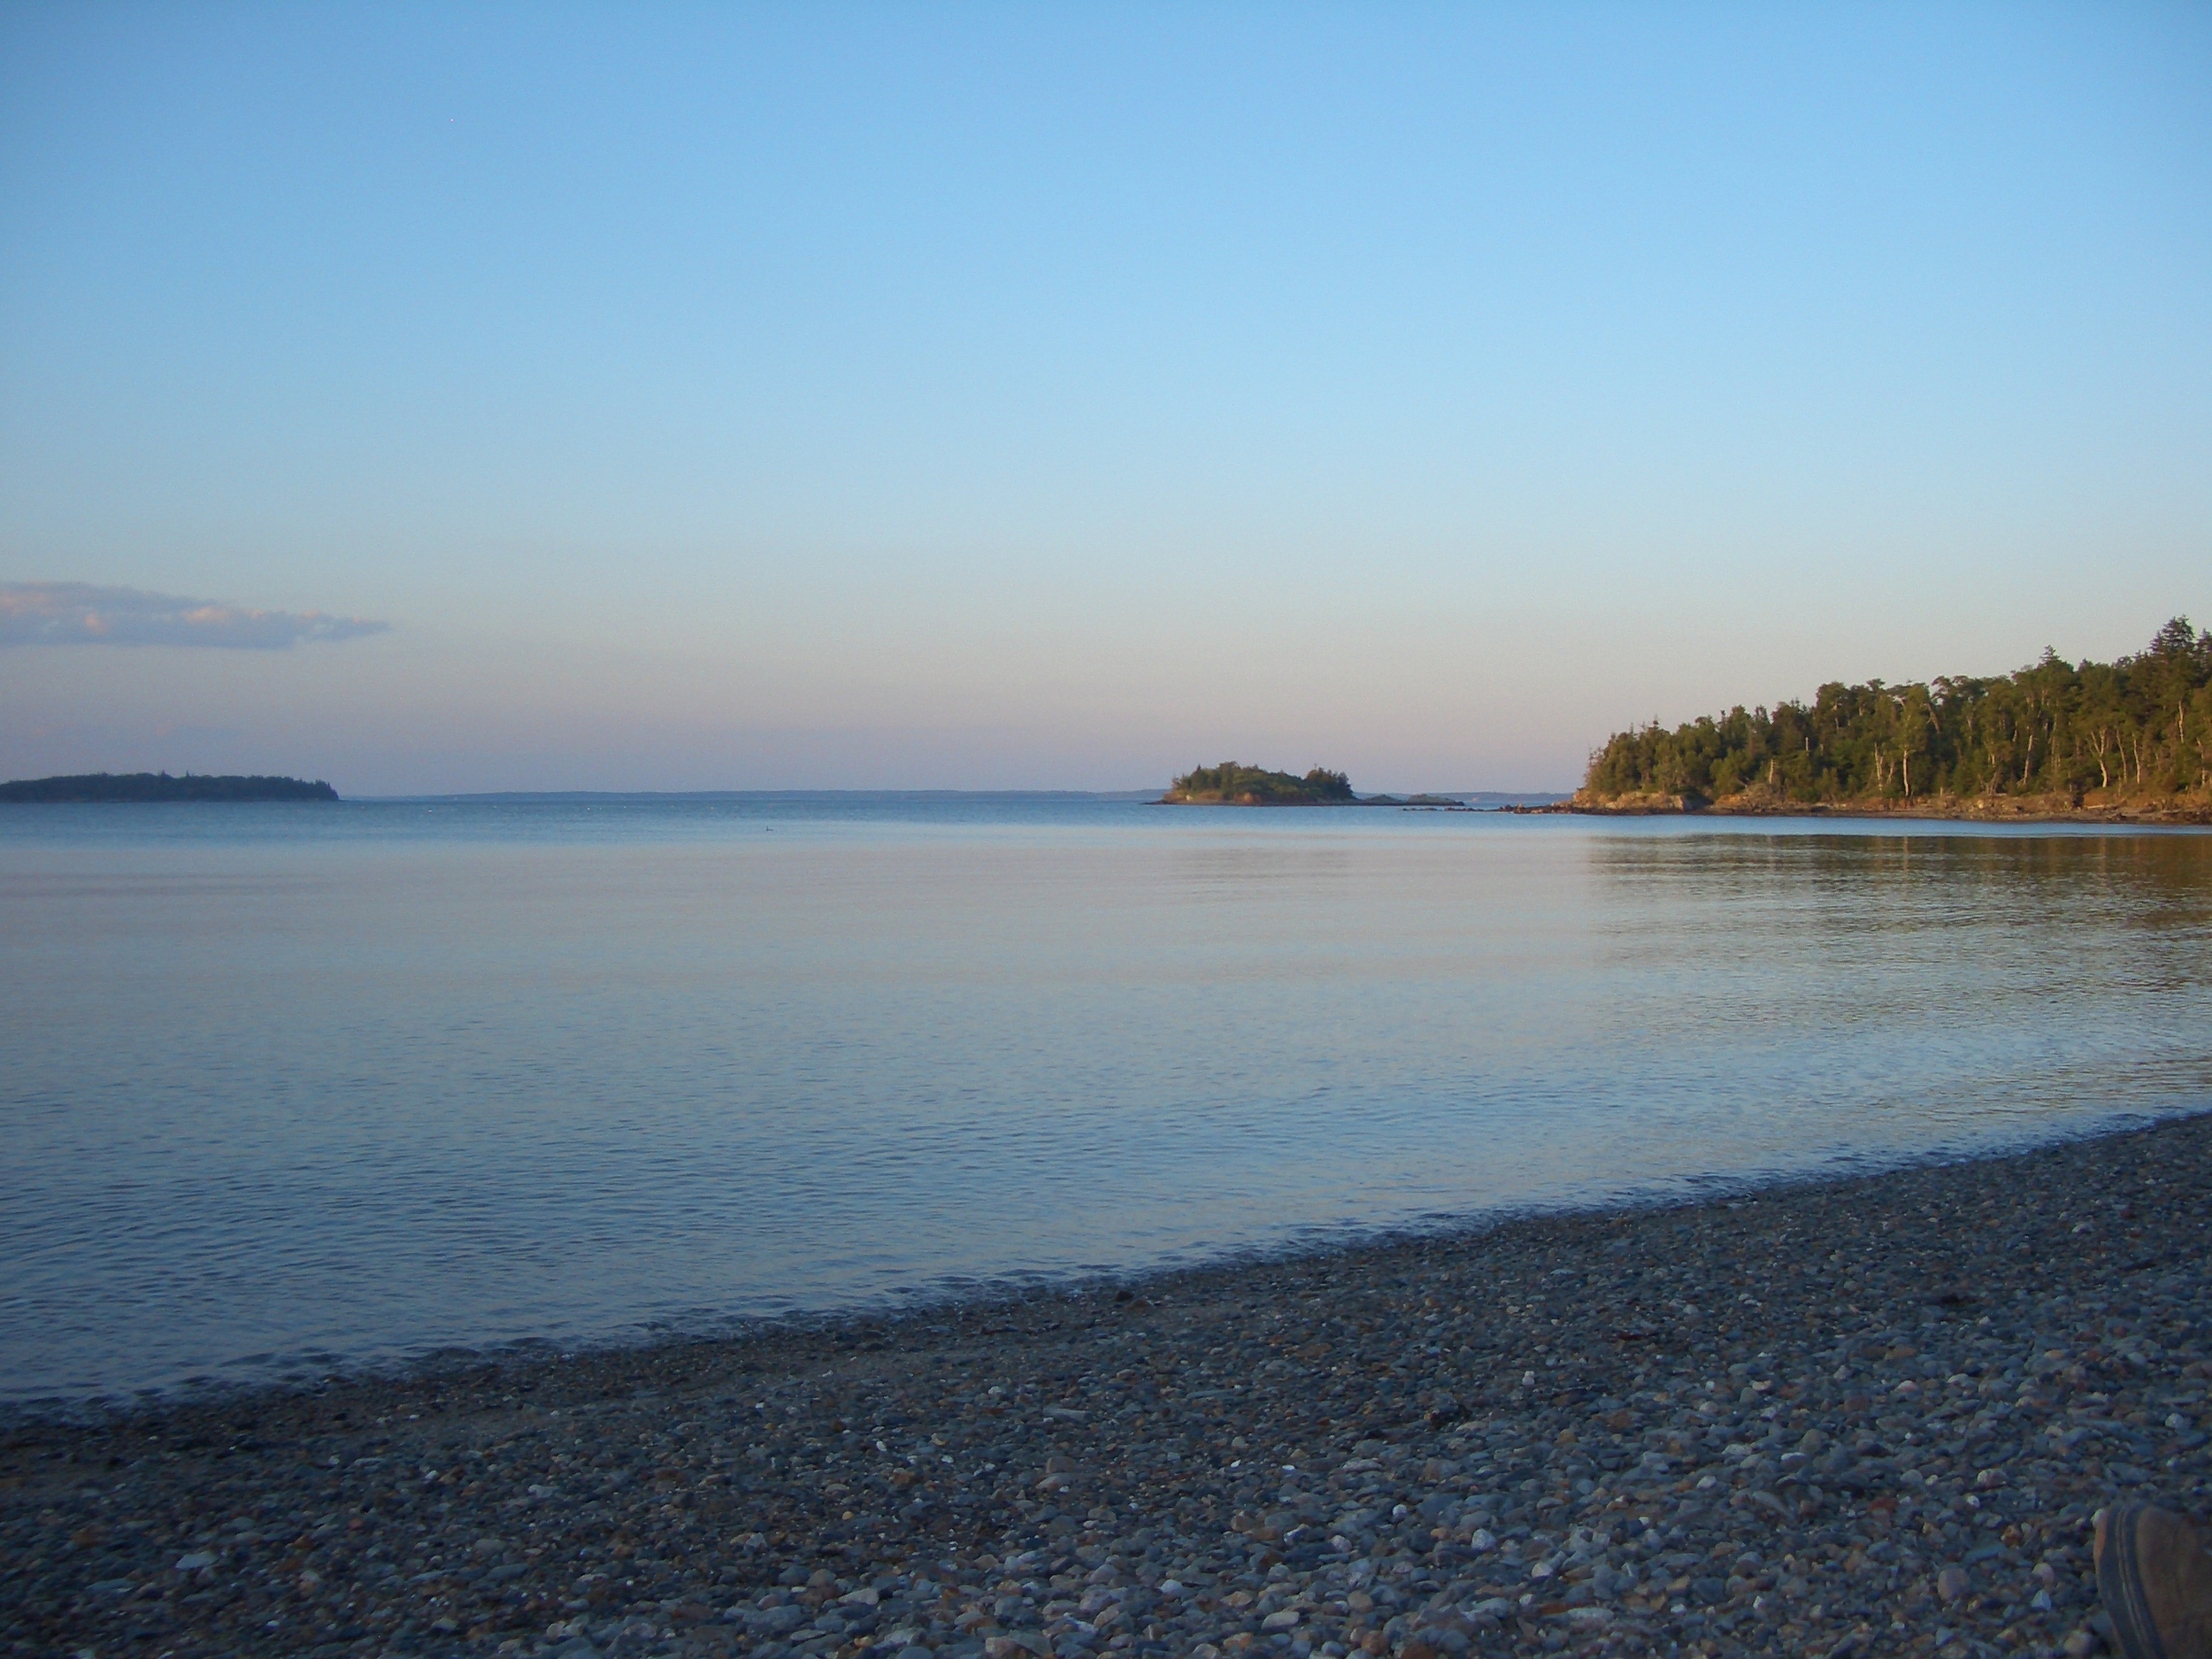 Bring your kayak and explore Penobscot Bay. There is nothing like paddling into the many small coves or sliding up onto a deserted beach on one of the many surrounding, uninhabited islands.